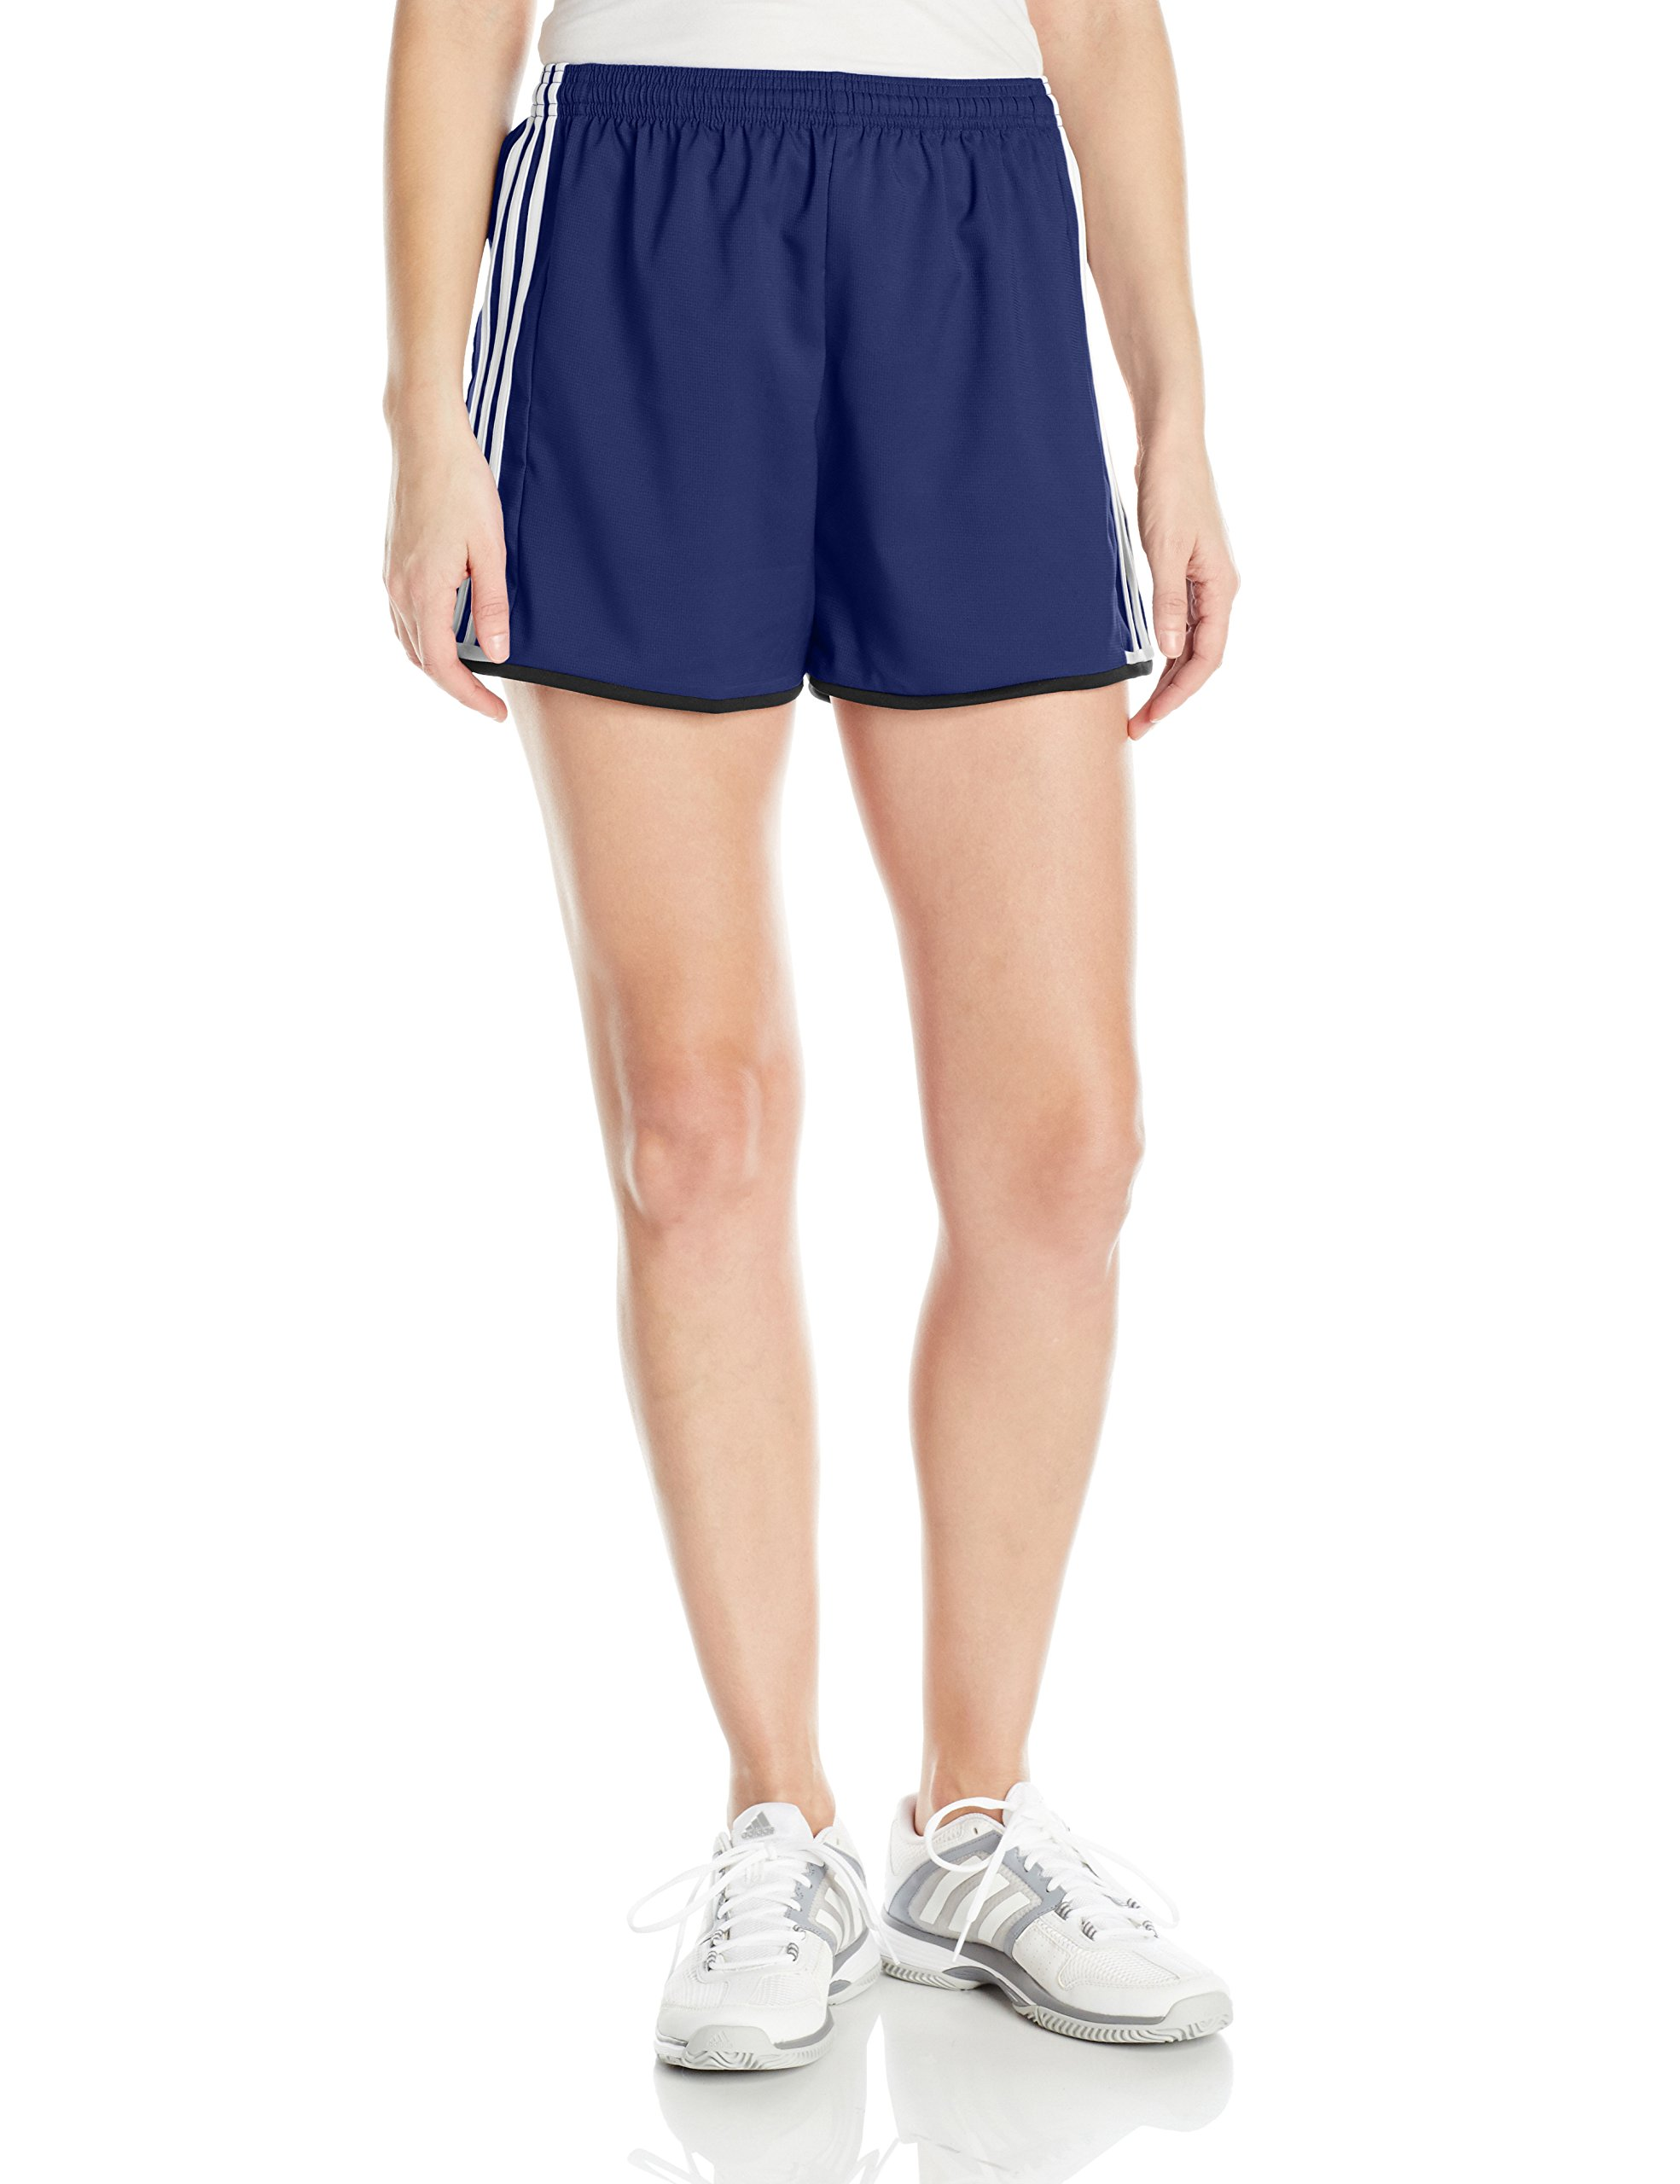 adidas Women's Soccer Condivo 16 Shorts, Dark Blue/White, X-Large by adidas